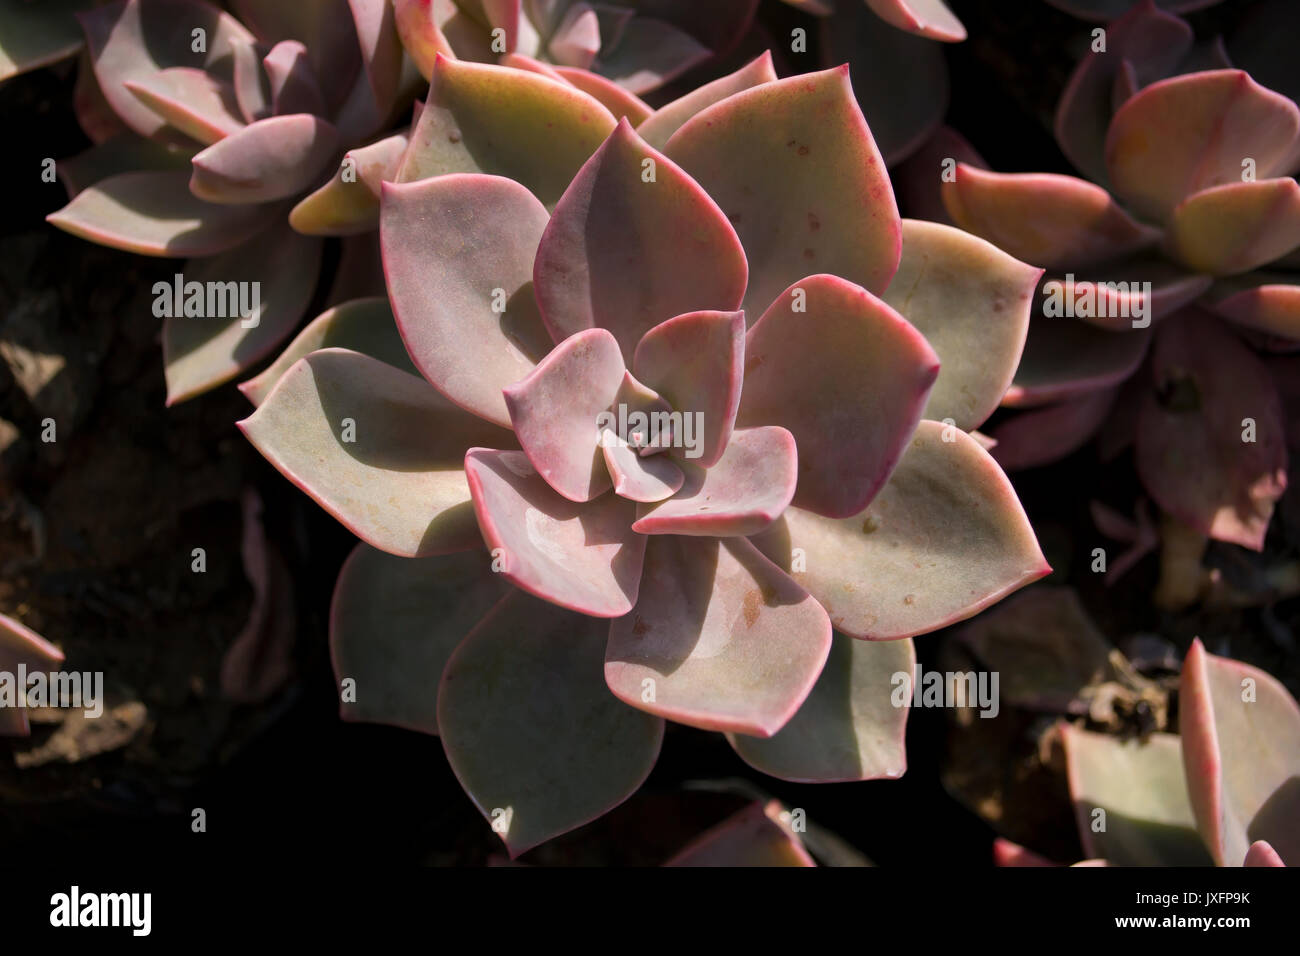 small thick botany plant - Stock Image